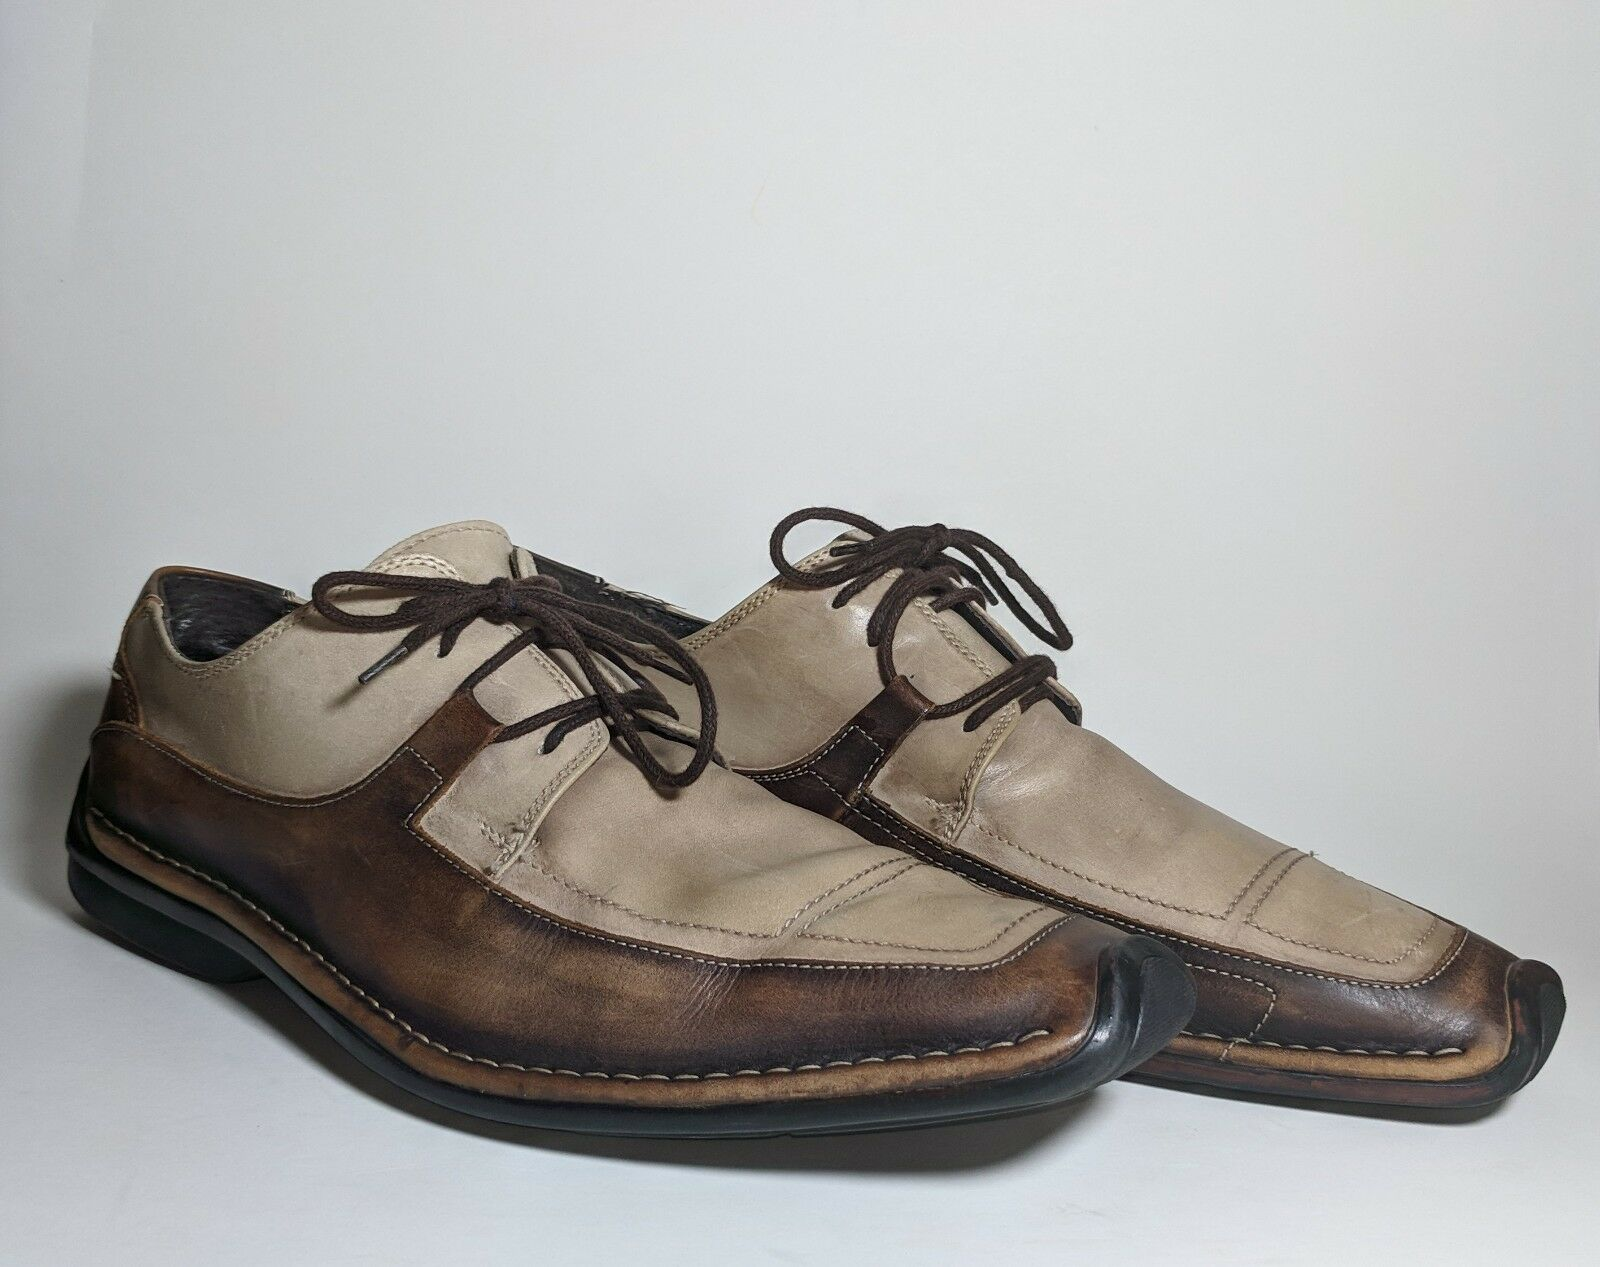 Bacco Bucci Men's Two Tone Brown Leather Venetian Driving Lace Up Sz 11 EUC